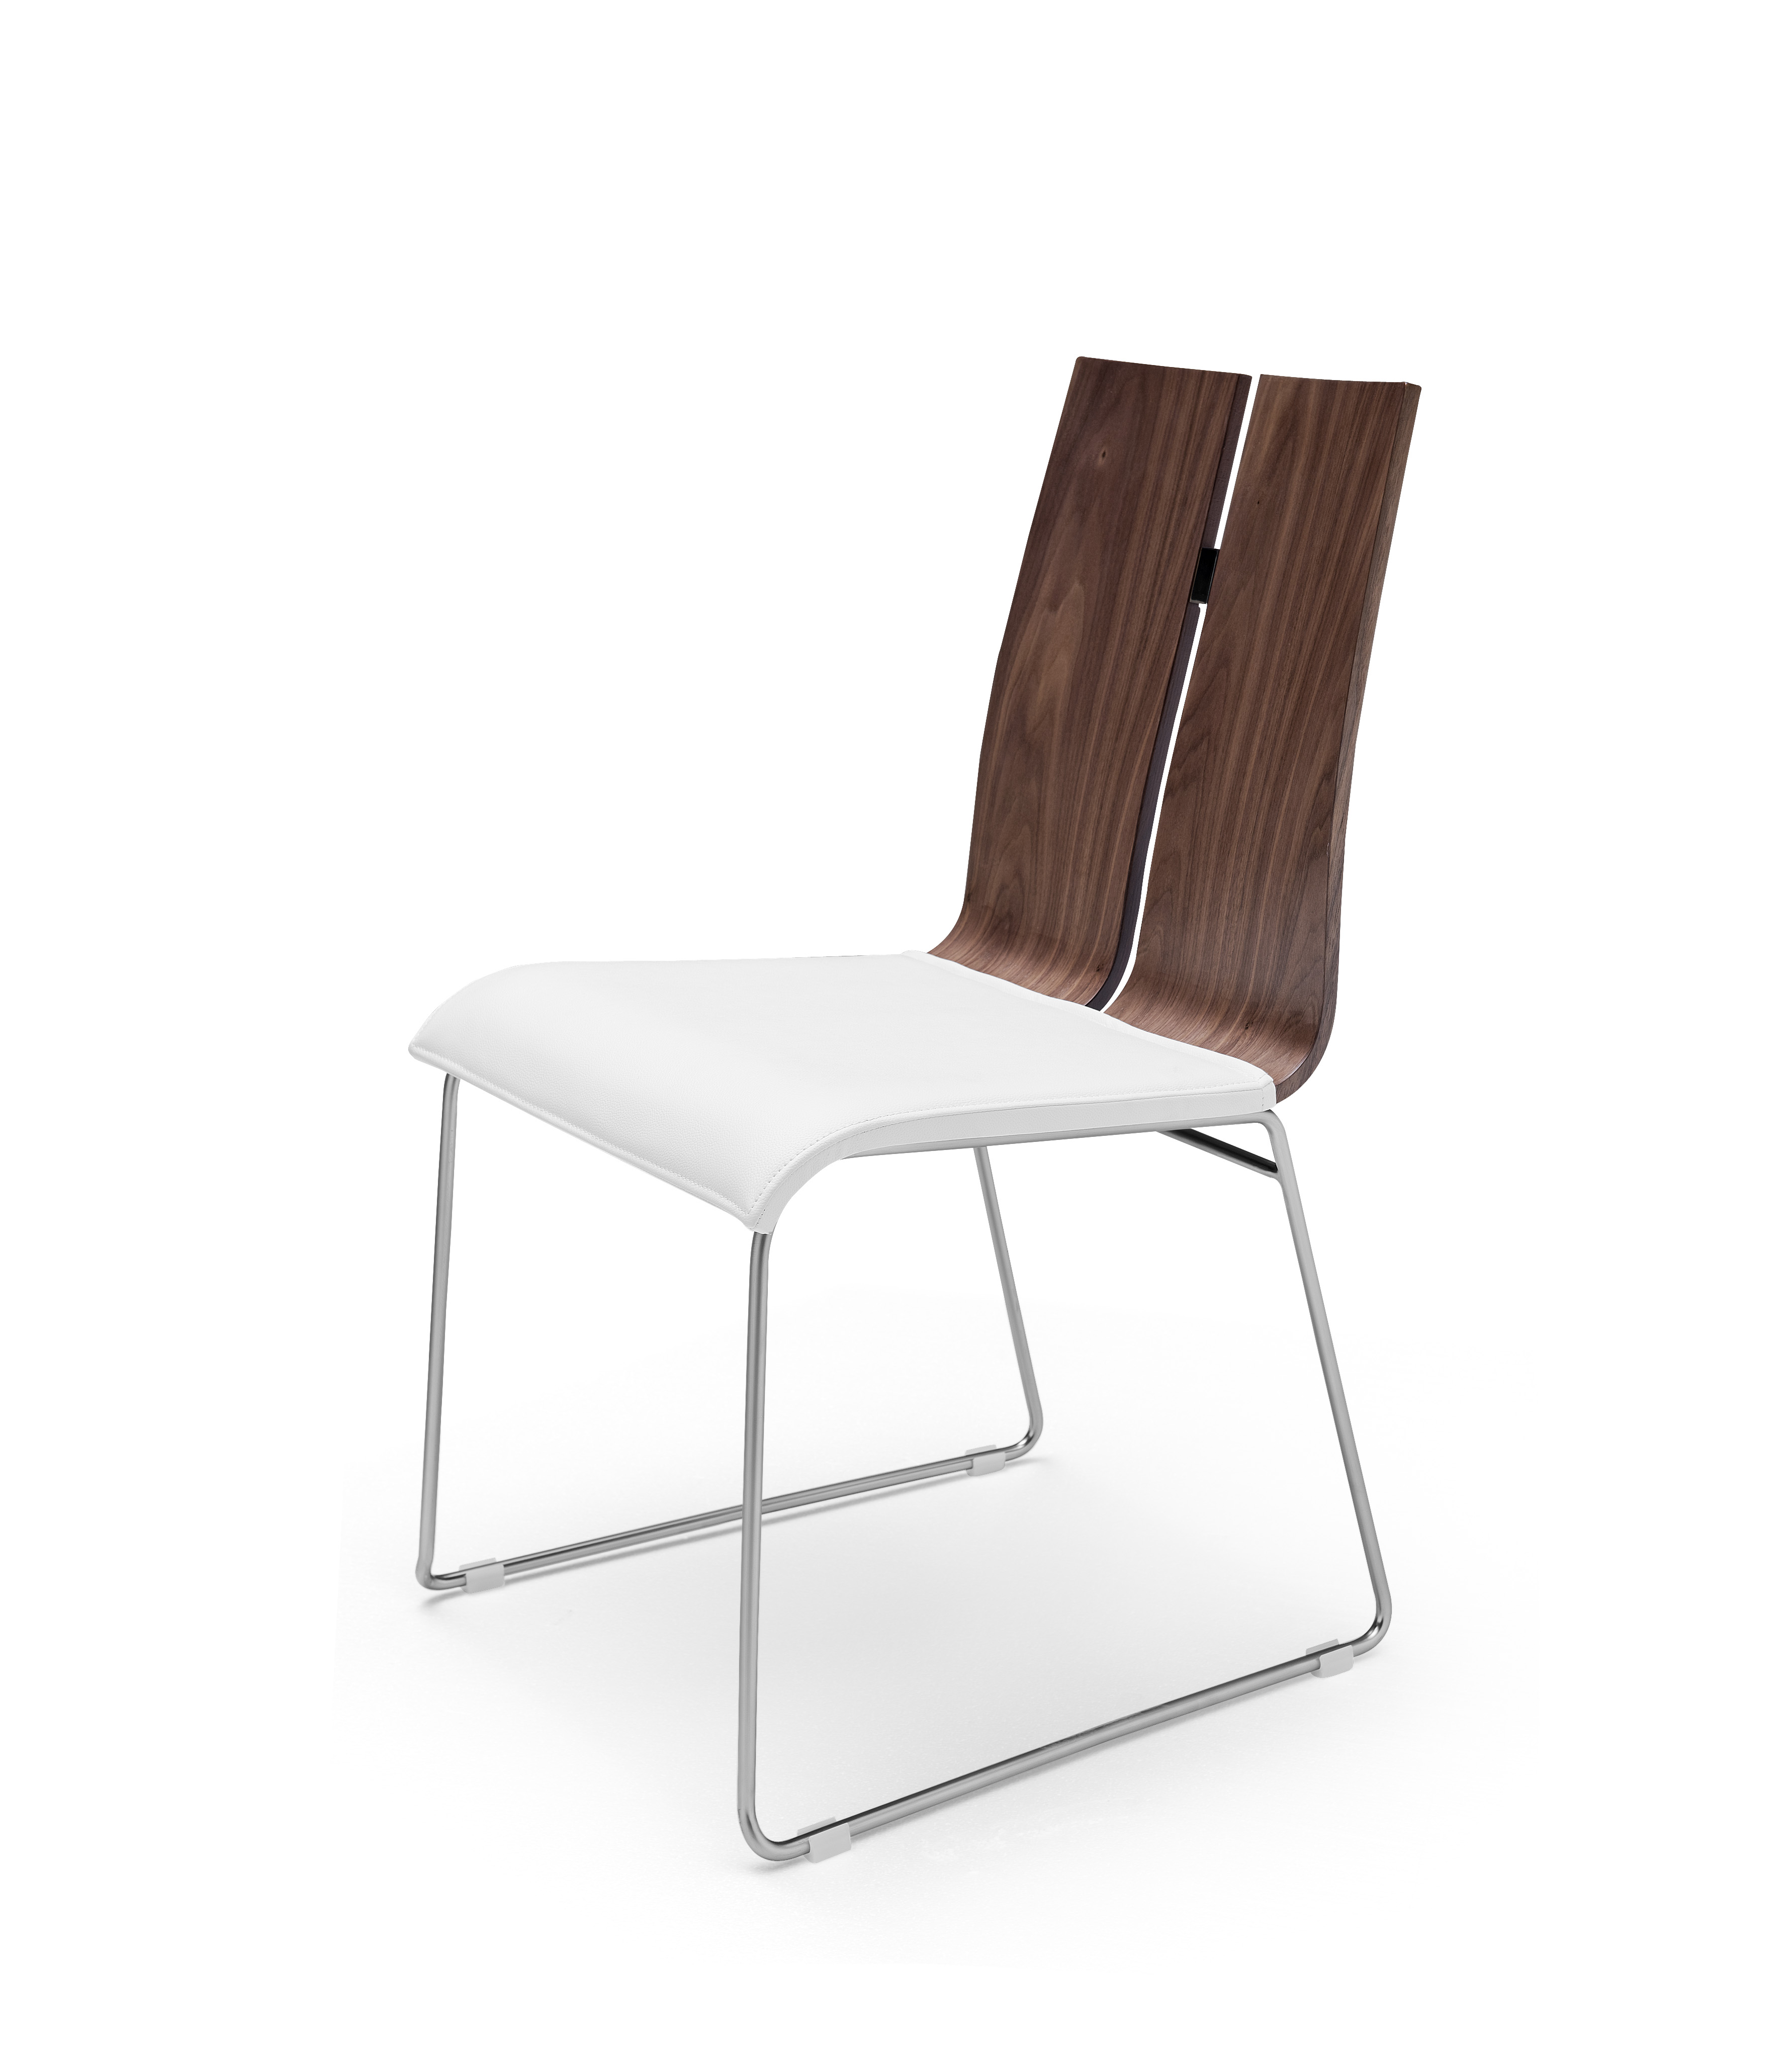 whiteline lauren set of 2 dining chair and natural walnut dc1191-wlt-wht